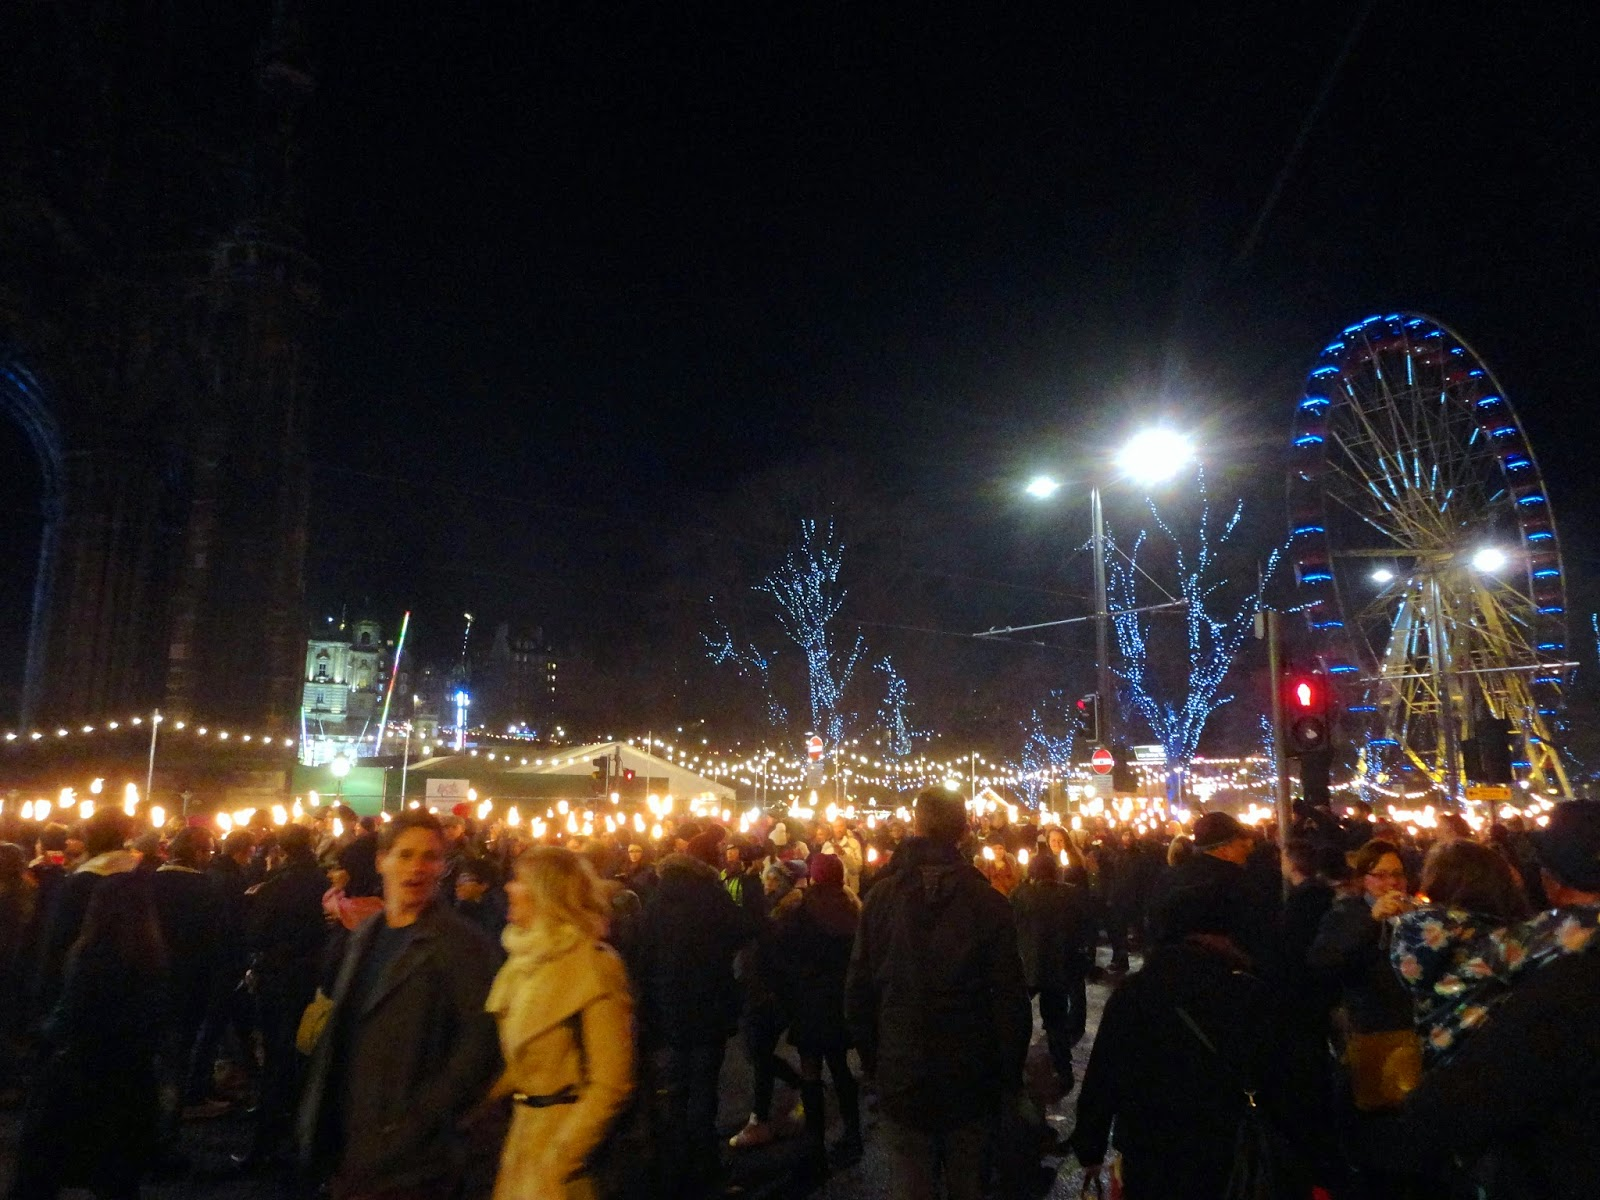 Edinburgh Hogmanay 2014 Torchlight Procession along Princes Street